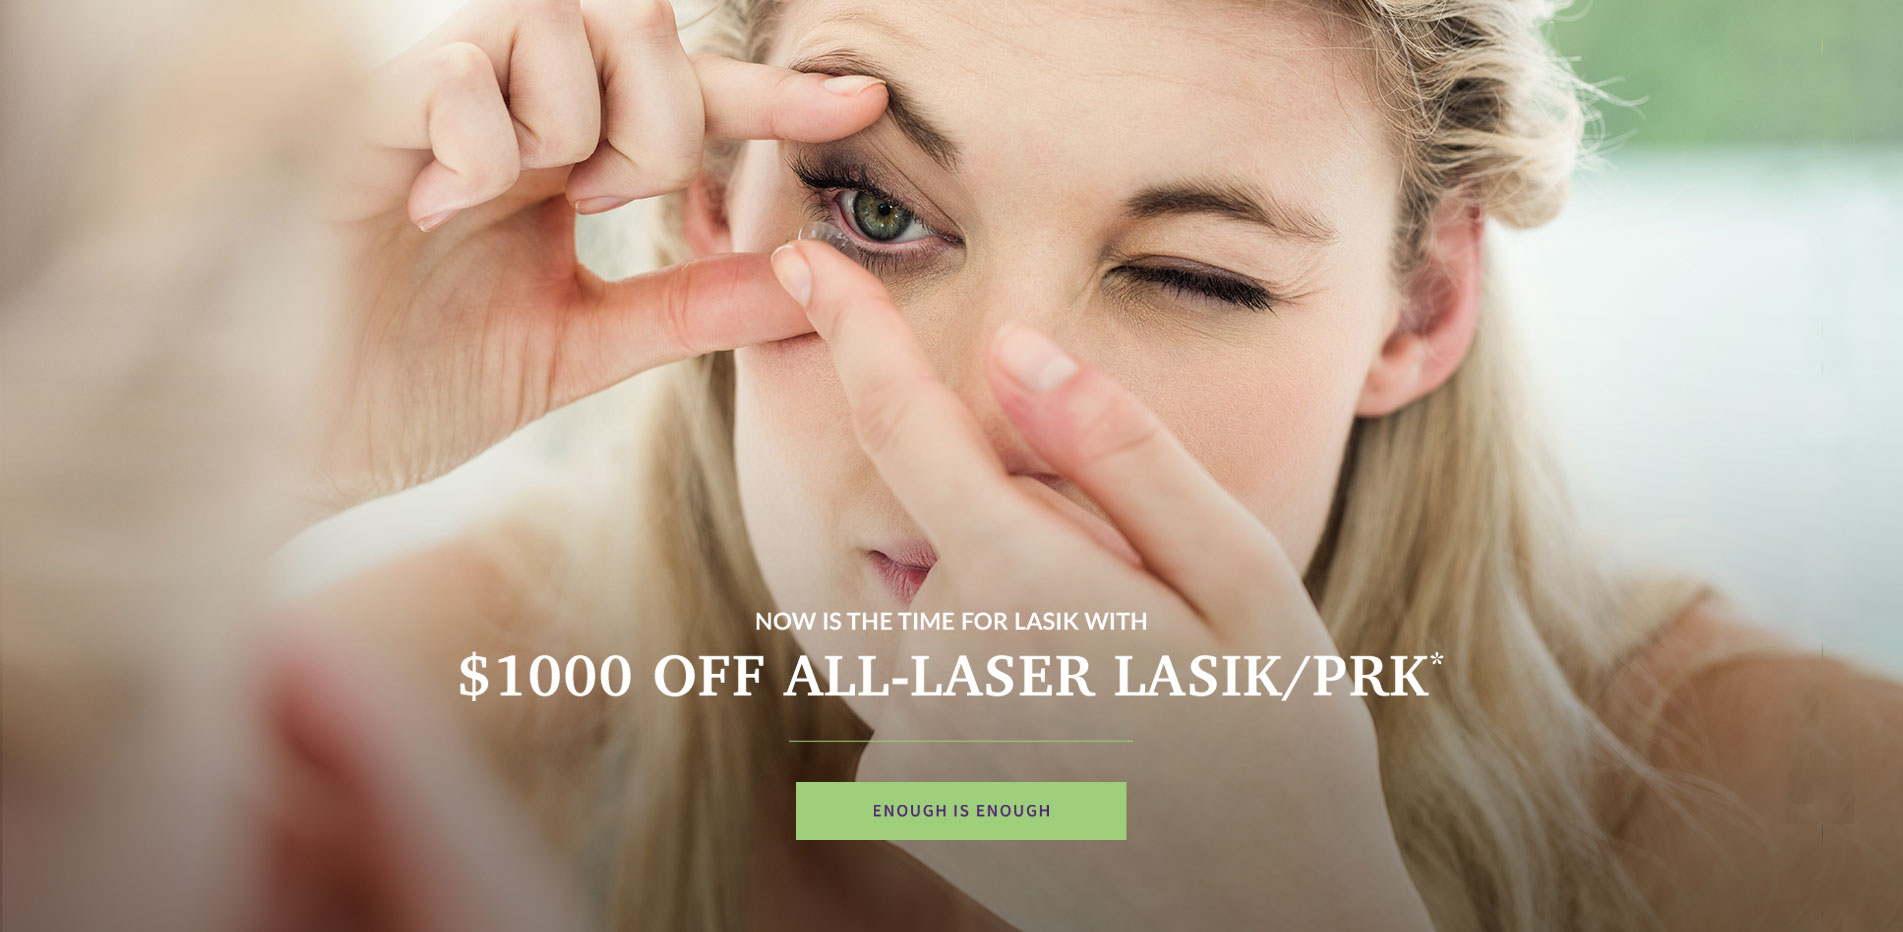 Now is the time for LASIK with $1000 off All-Laser LASIK/PRK